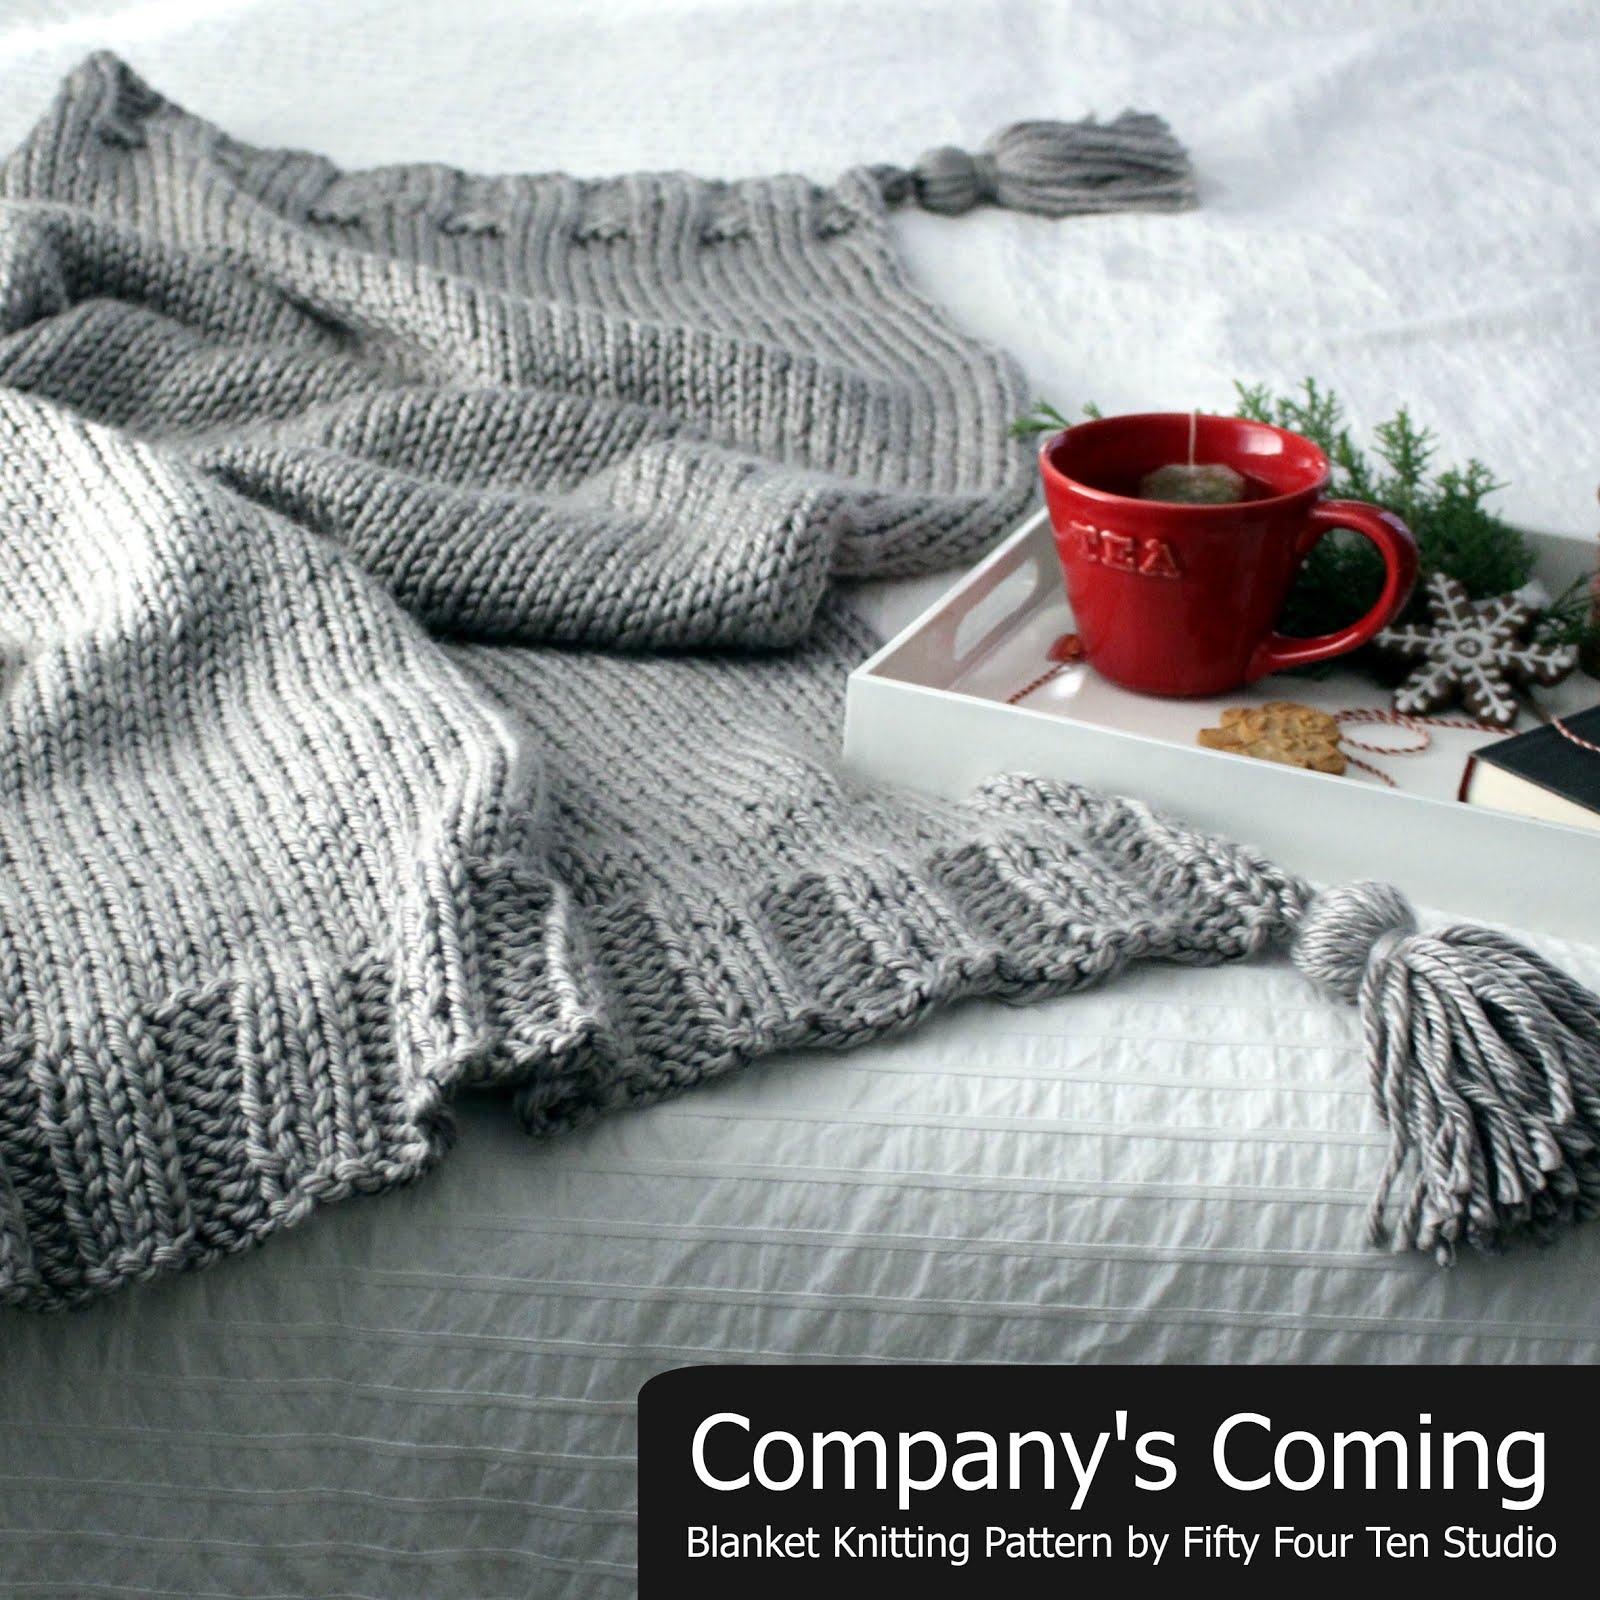 Company's Coming Blanket